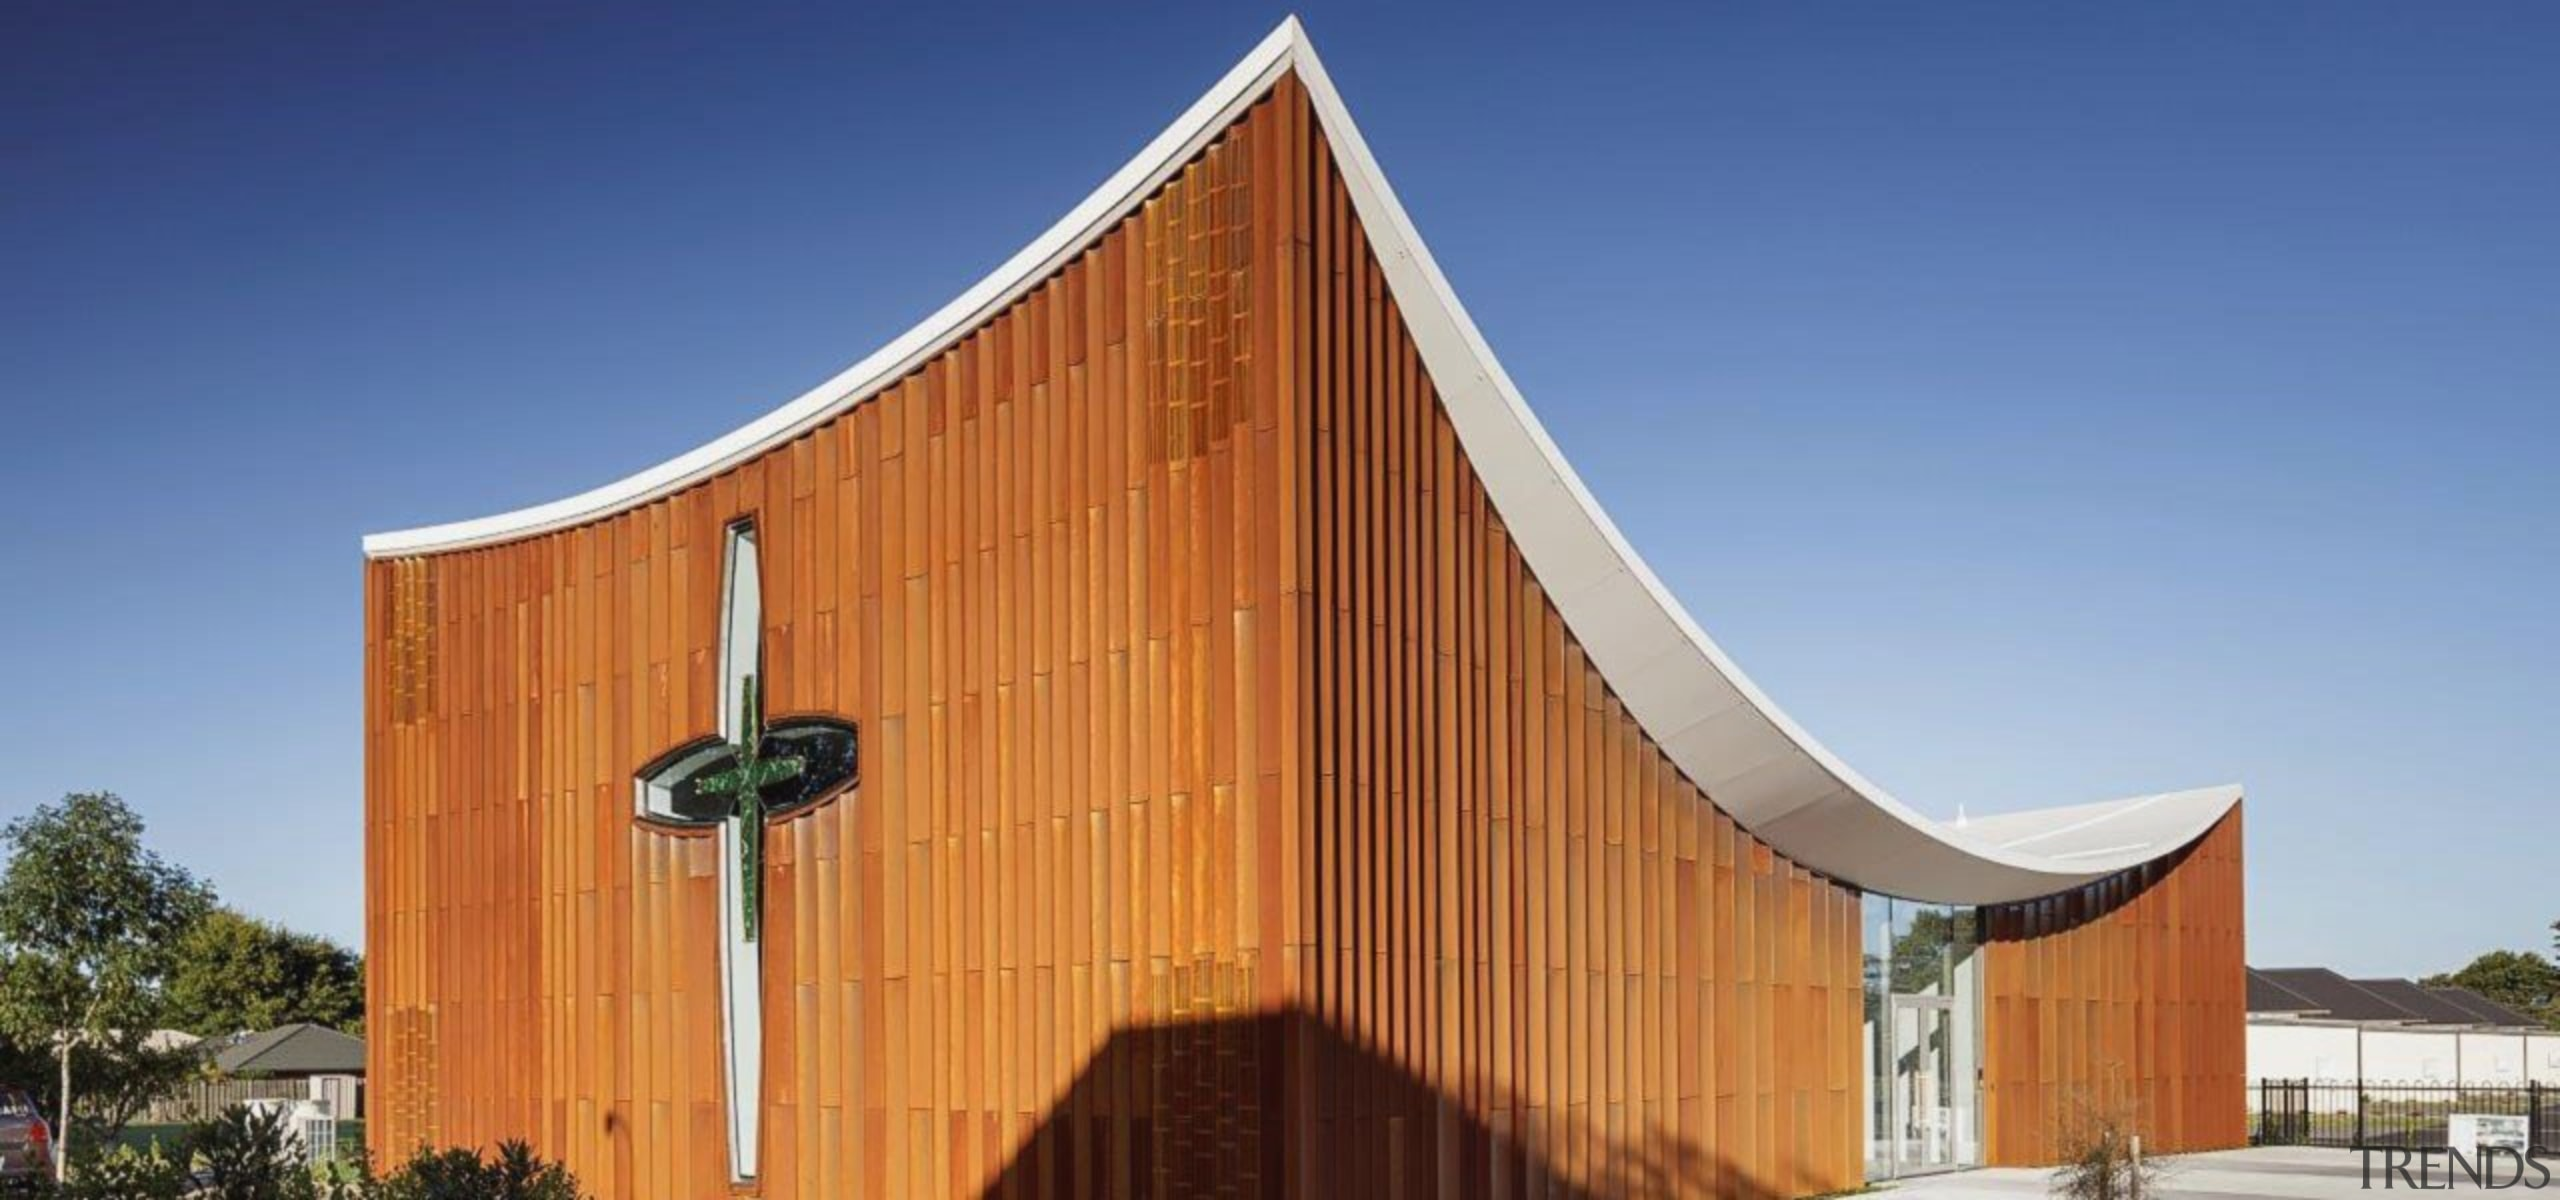 Sisters of Mercy 5 - architecture | building architecture, building, chapel, facade, home, house, place of worship, property, real estate, roof, siding, sky, wood, teal